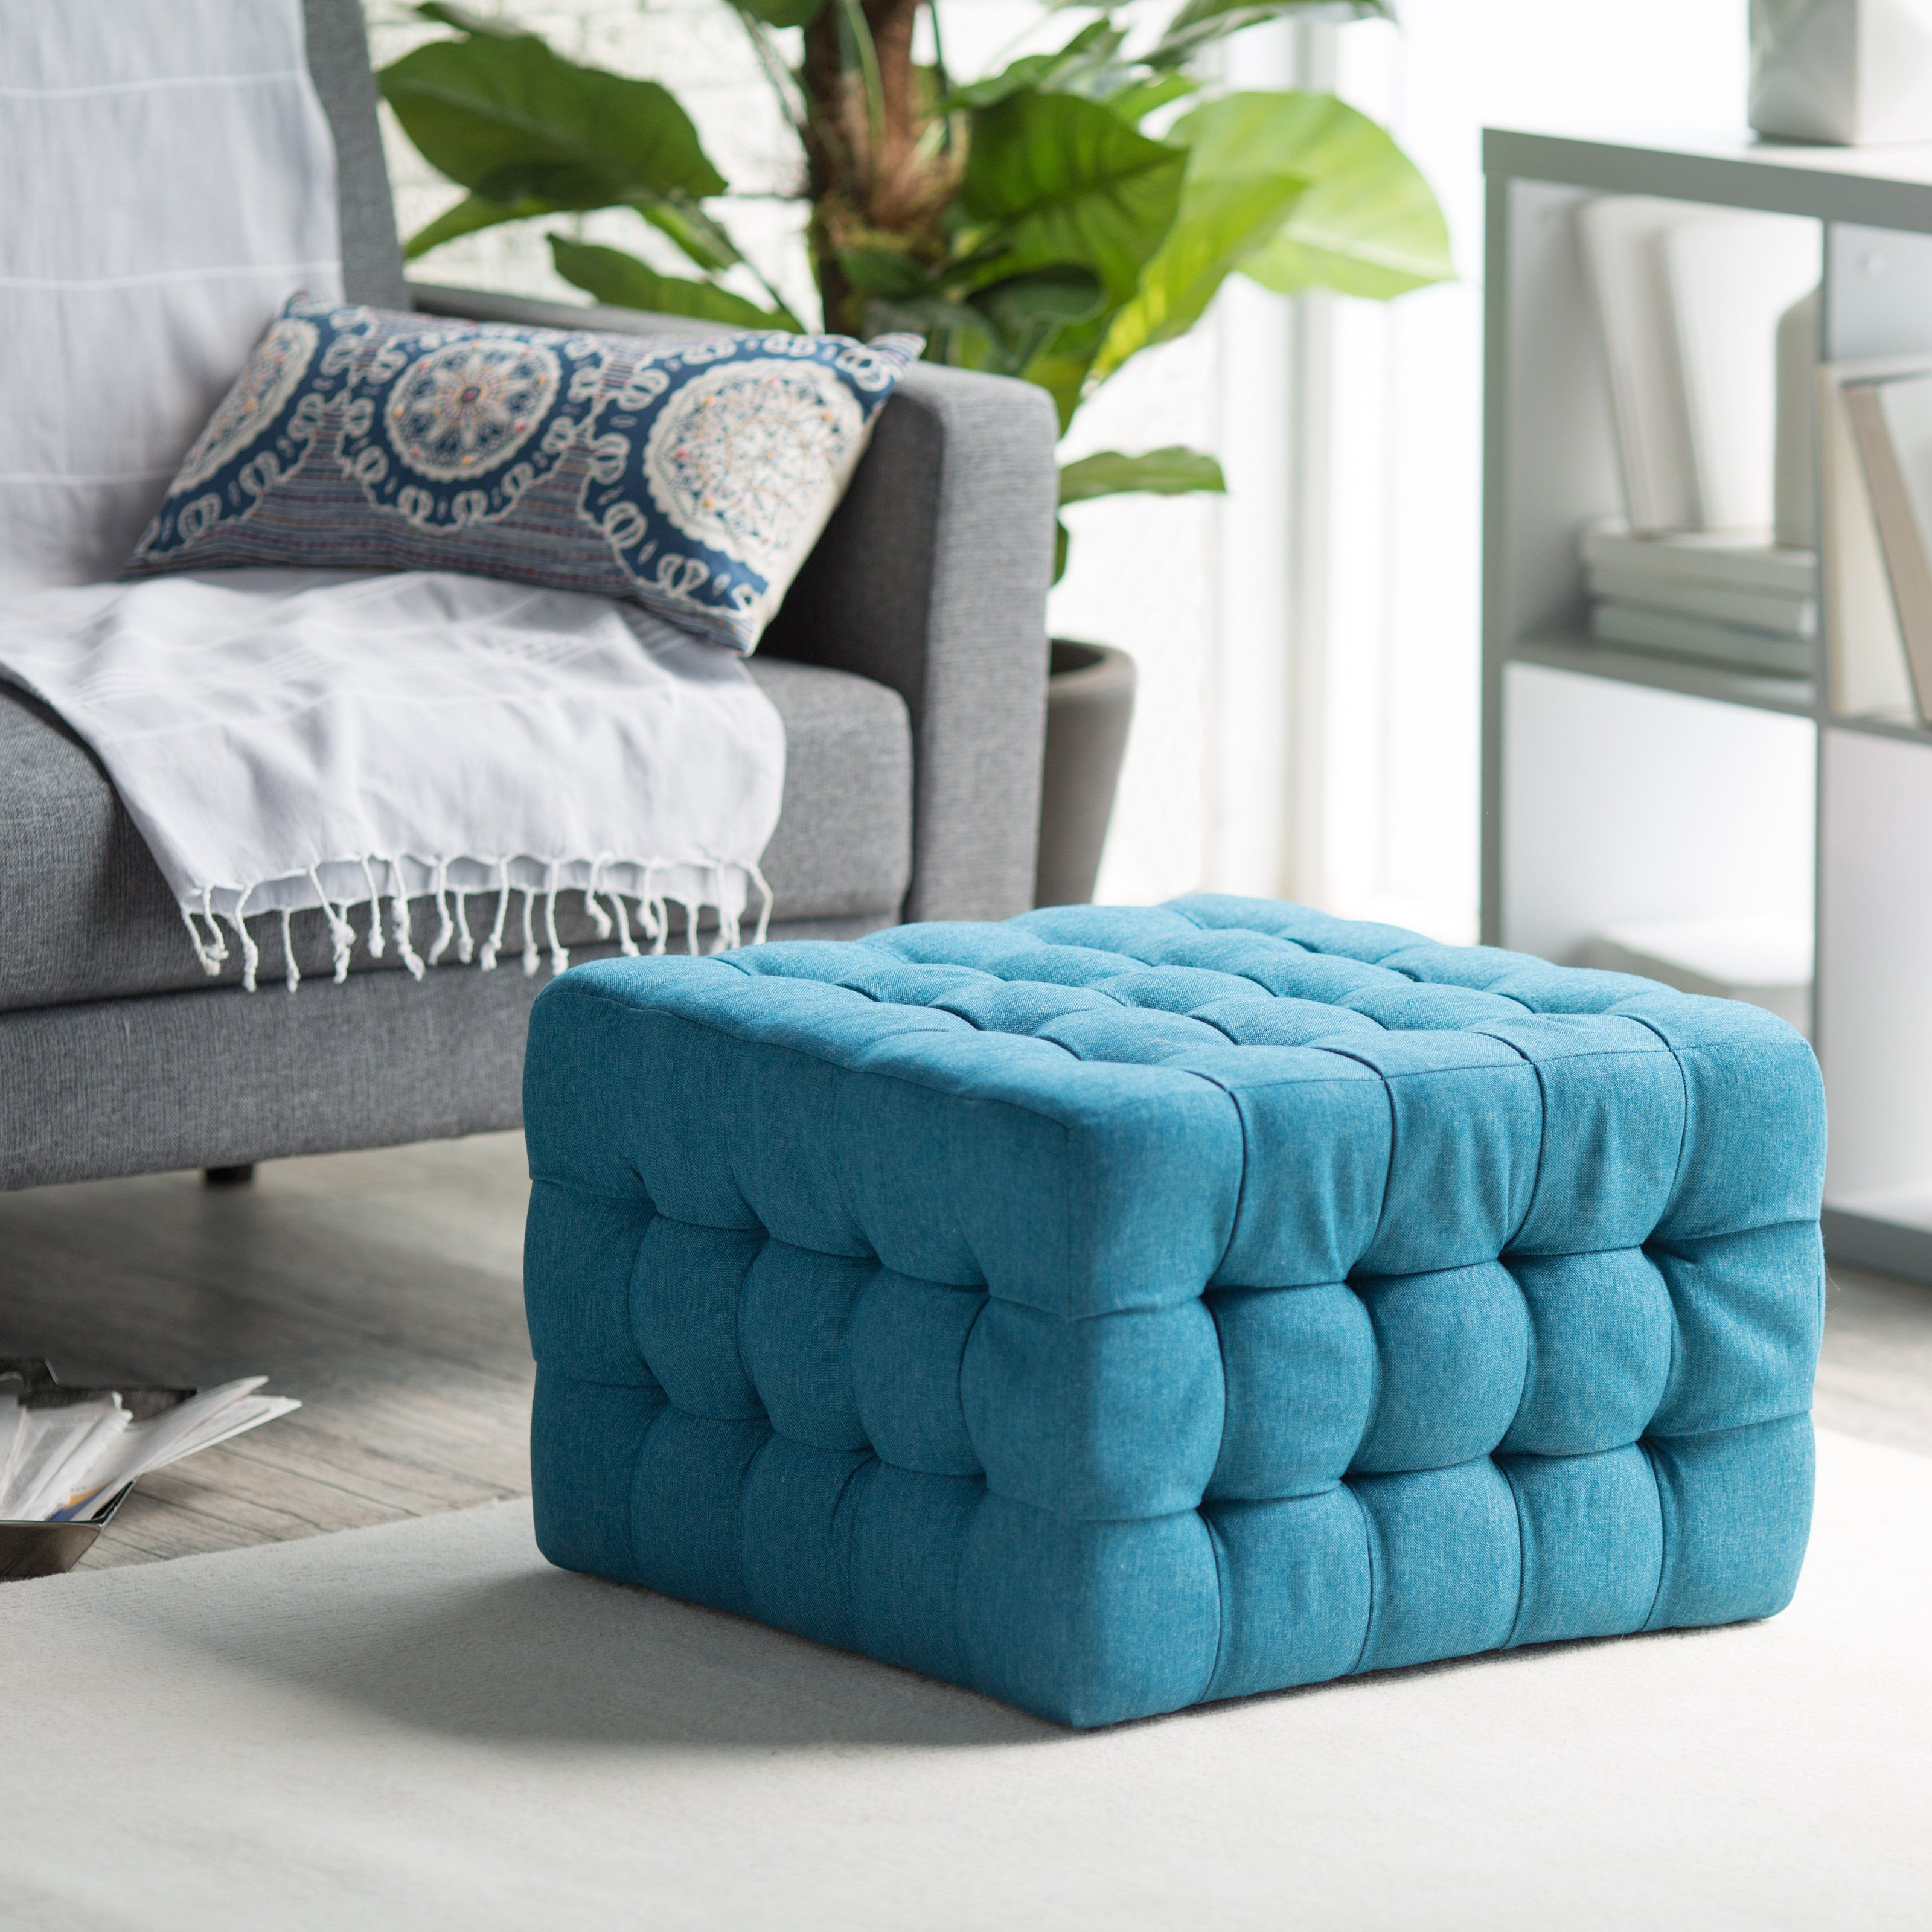 Belham Living Allover Tufted Square Ottoman Teal There S No